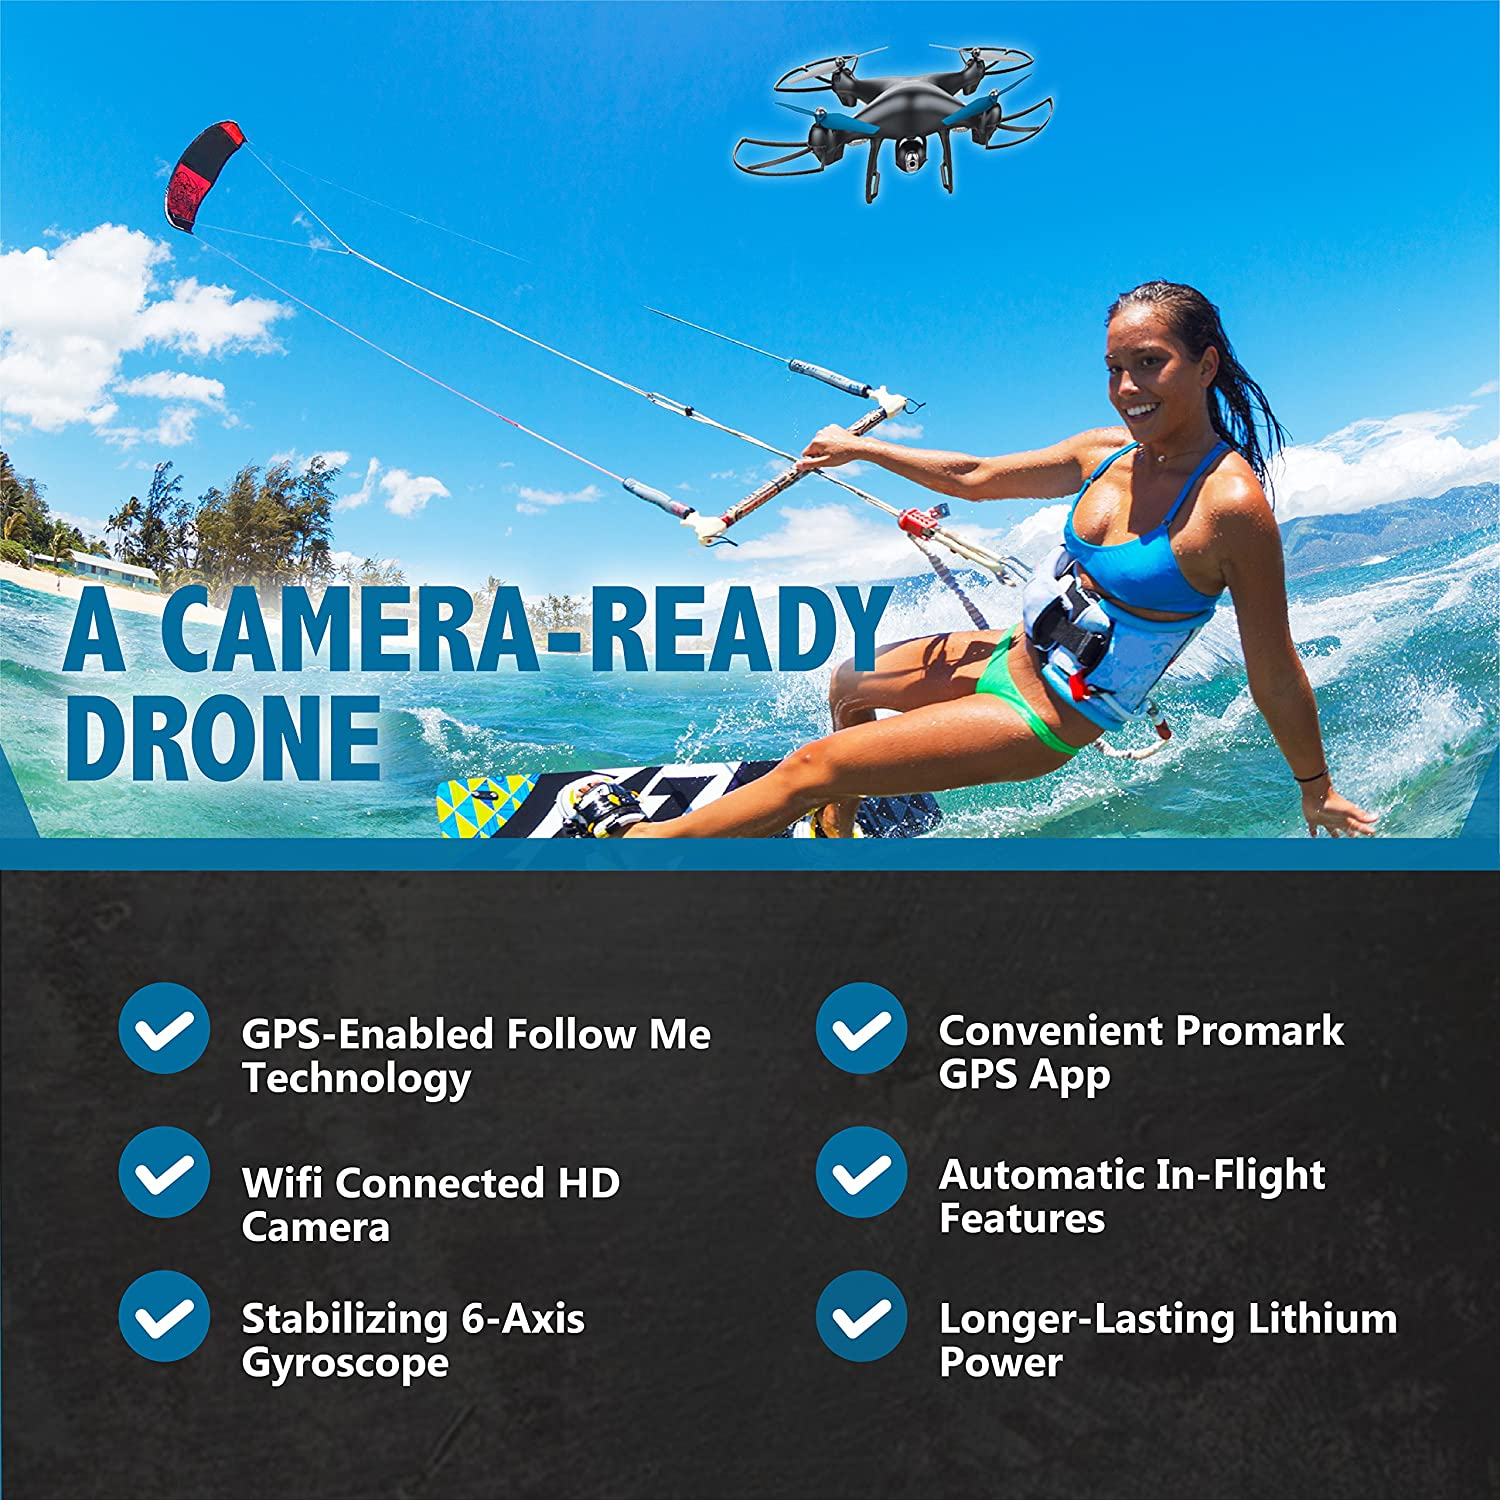 720p WiFi Camera 6-Axis Gyroscope for Panoramic Shots Promark: GPS Shadow Drone Premier GPS-Enabled Drone with Follow Me Technology Lithium Batteries Included Includes VR Goggles